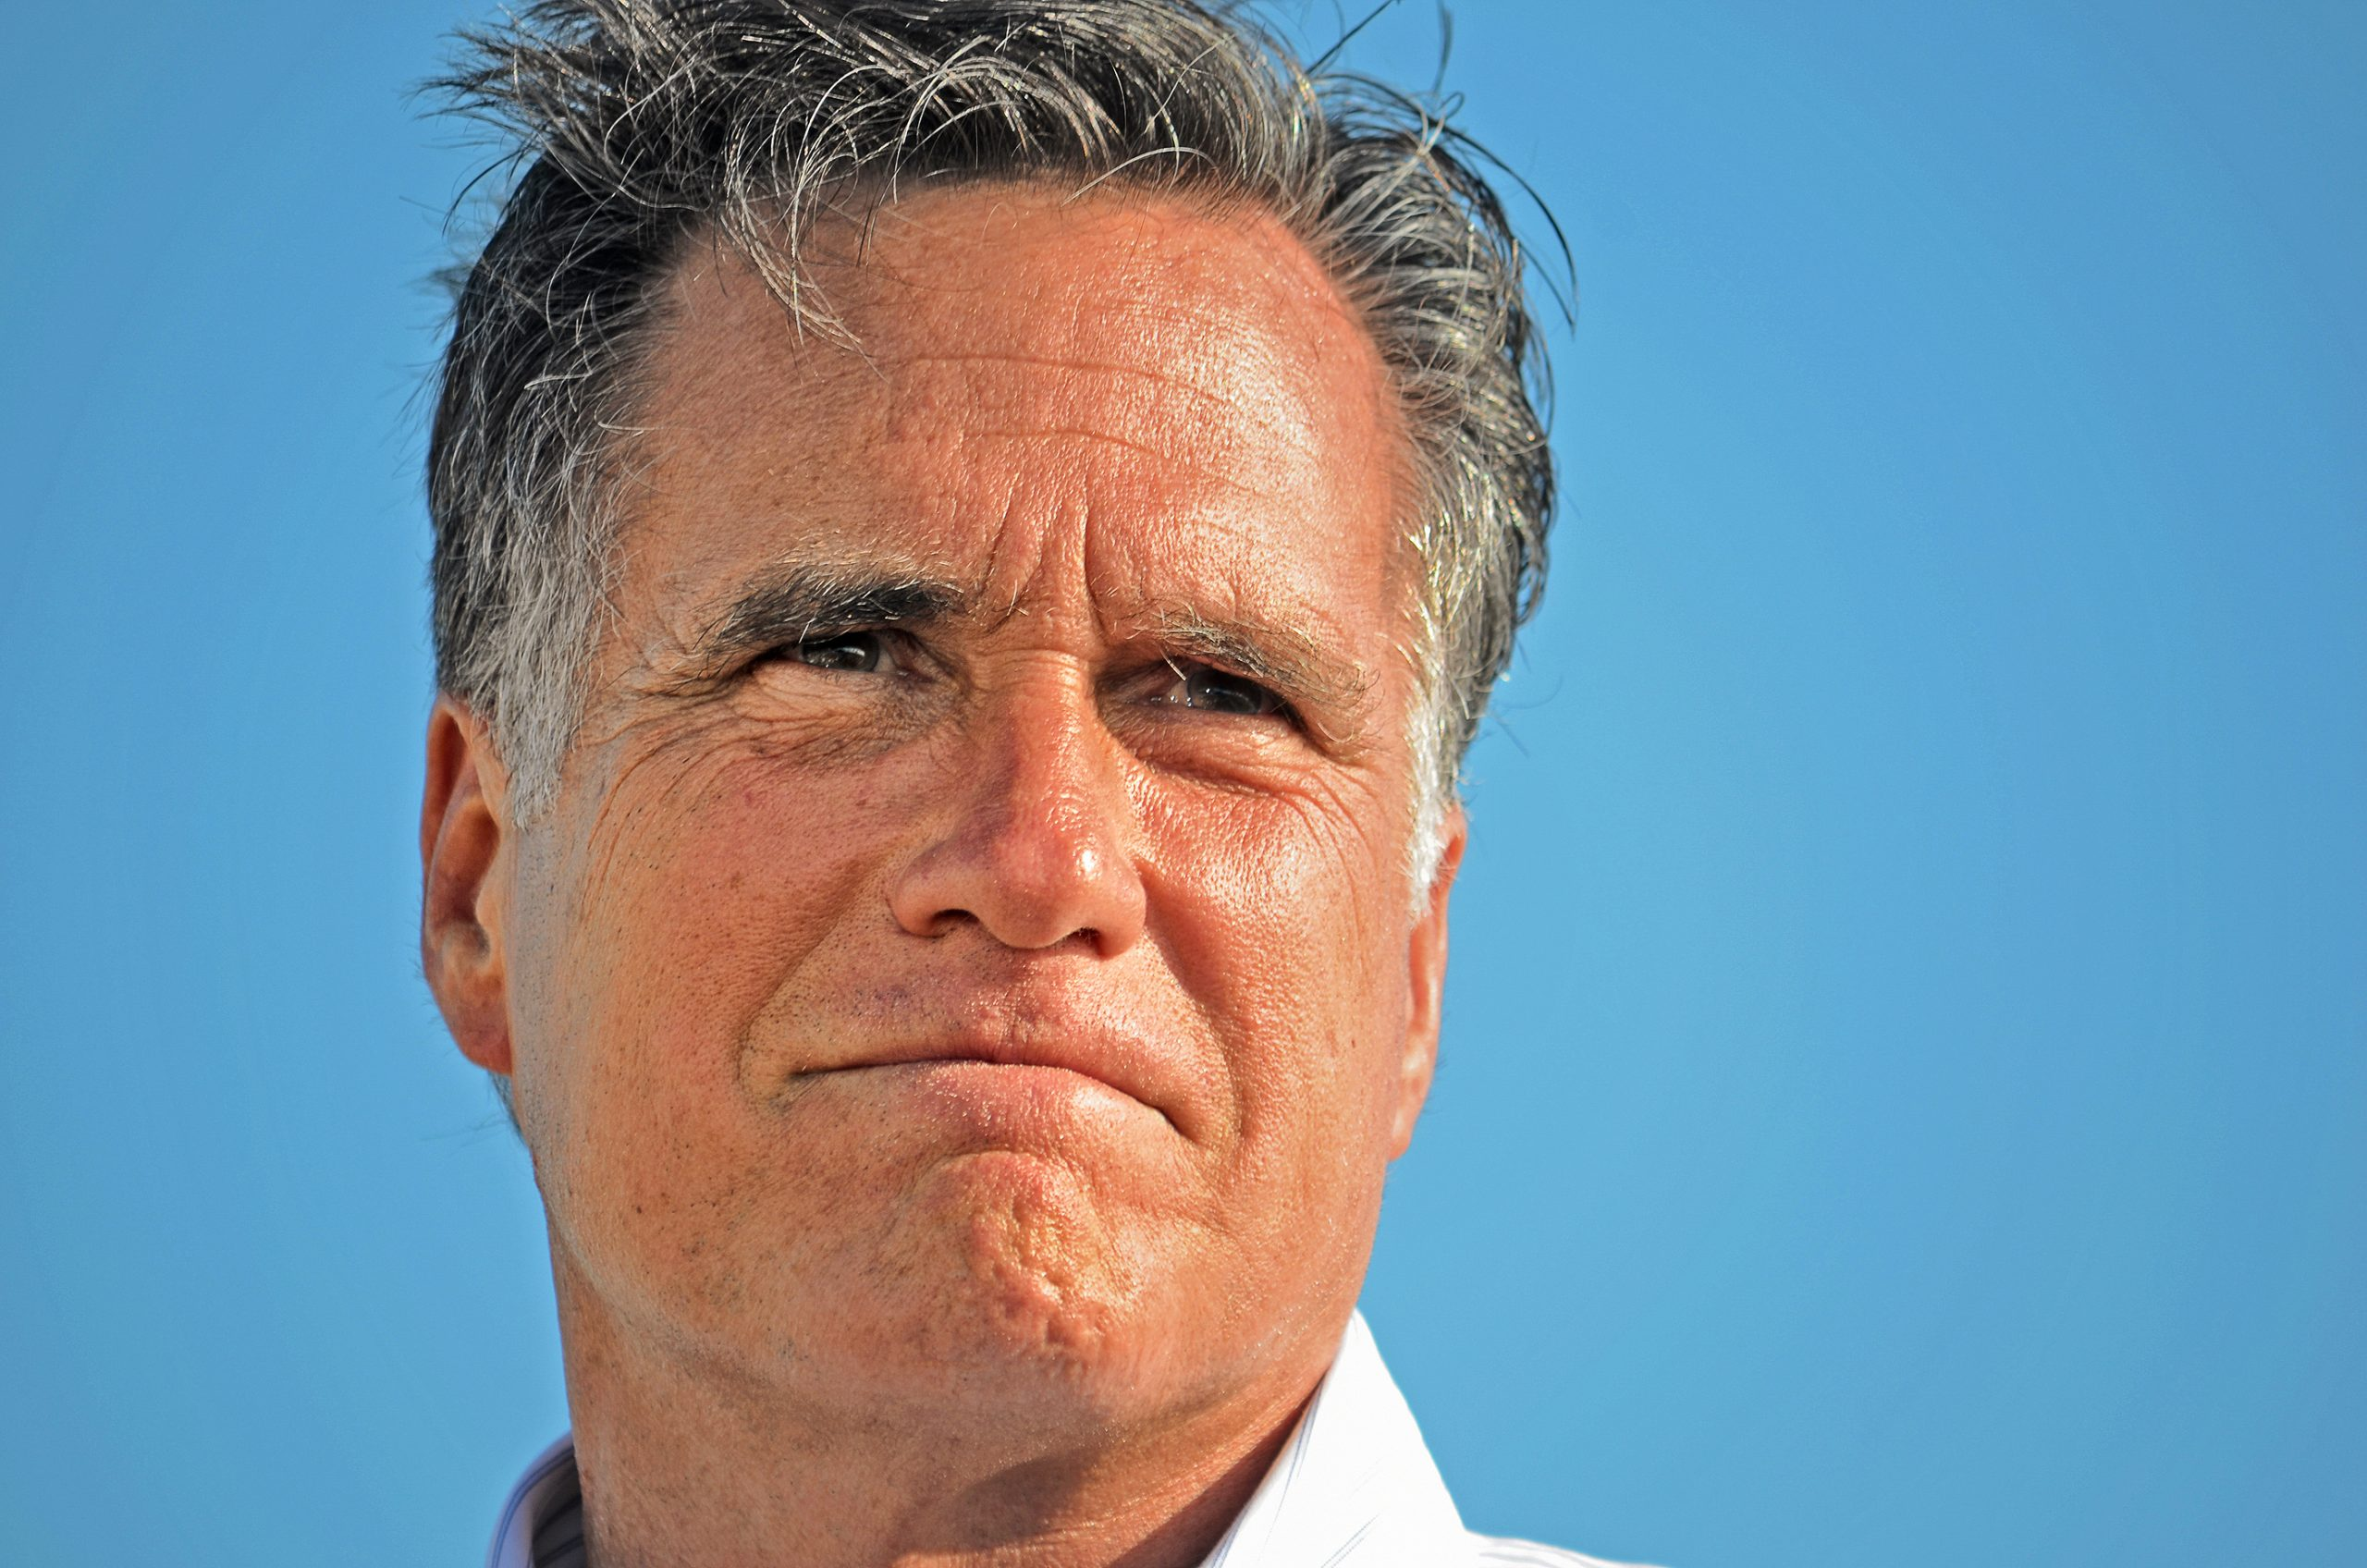 """It's OFFICIAL! Mitt Romney Is In For SCOTUS Vote- """"I Intend To Follow The Constitution"""" - Click It Conservative News"""